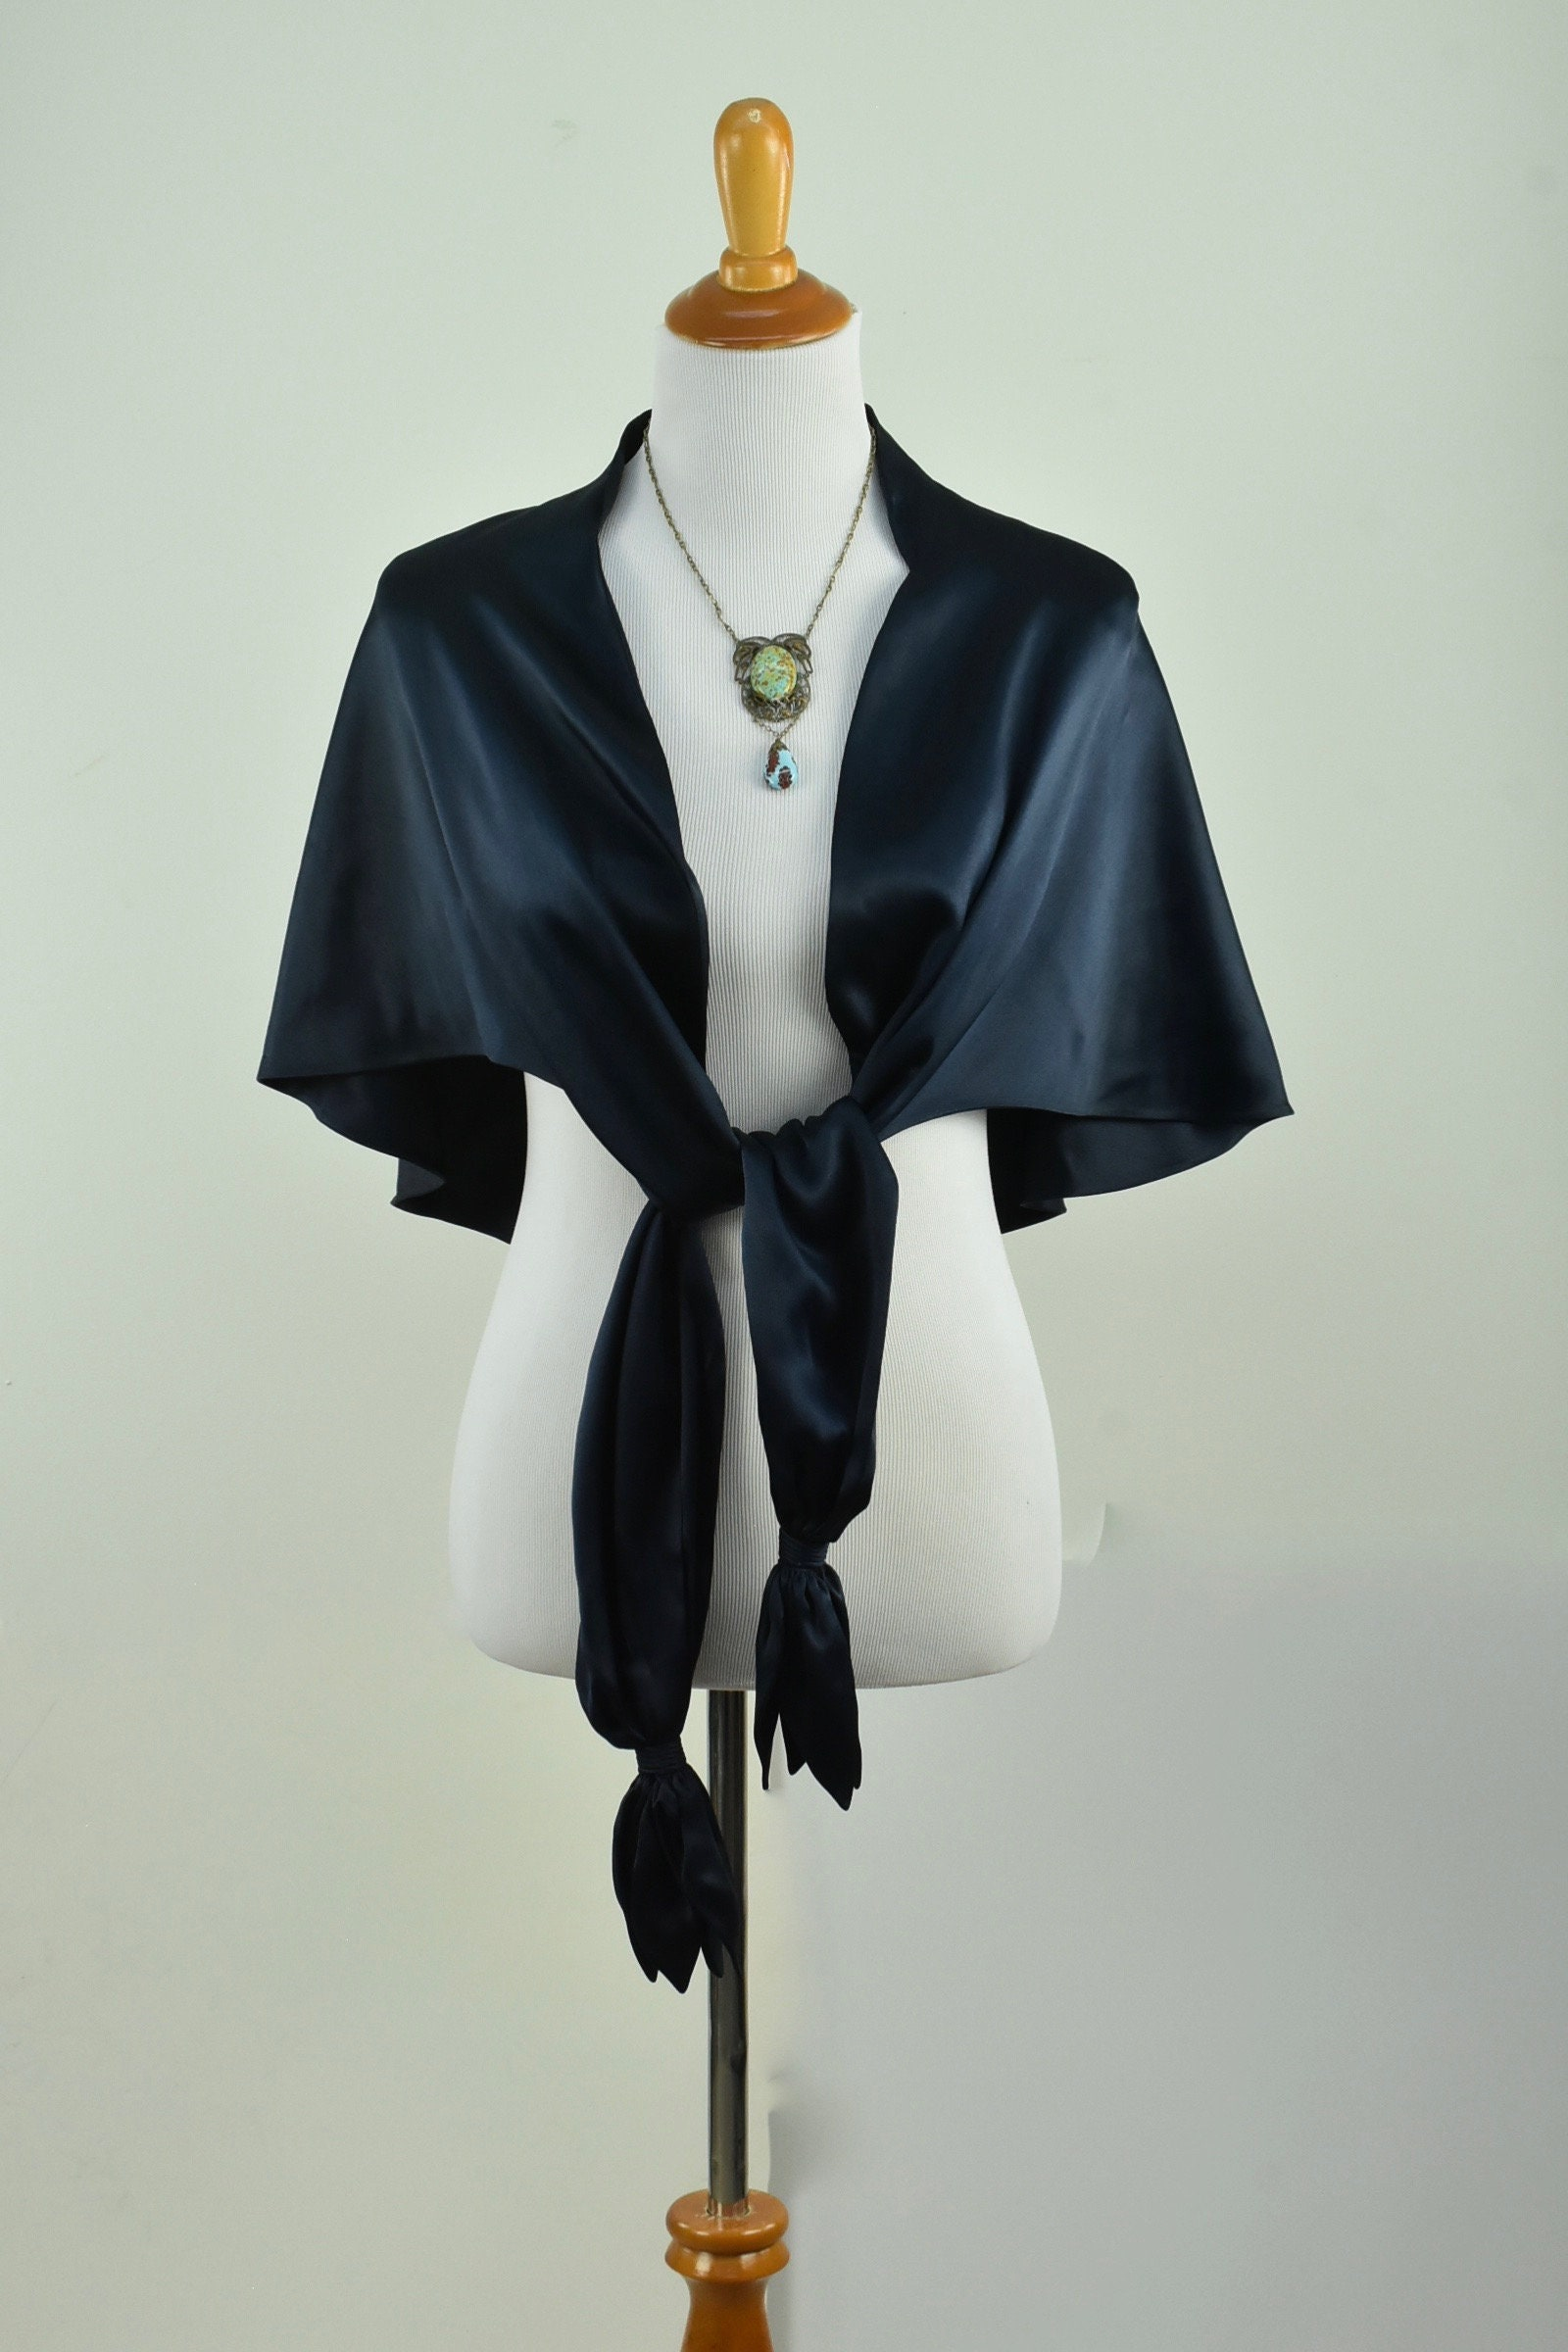 1930s Art Deco Style Jewelry 1930S Reversible Navy Blue Satin Cape With Petaled Tassels...........size Small To Medium $20.00 AT vintagedancer.com